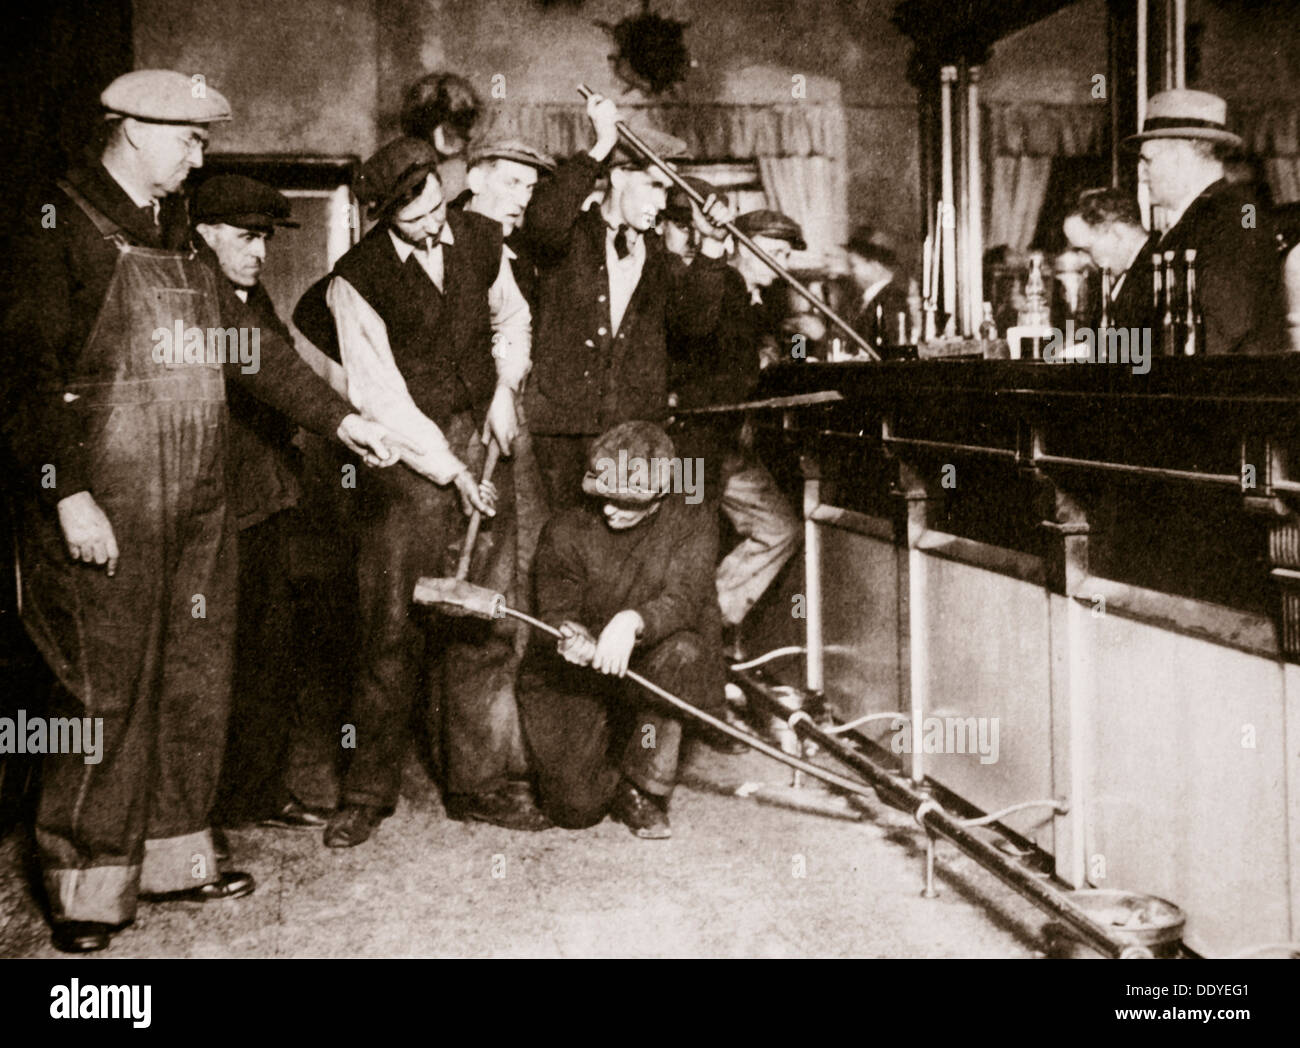 A bar in Camden, New Jersey, being forcibly dismantled by dry agents, USA, 1920s. Artist: Unknown - Stock Image